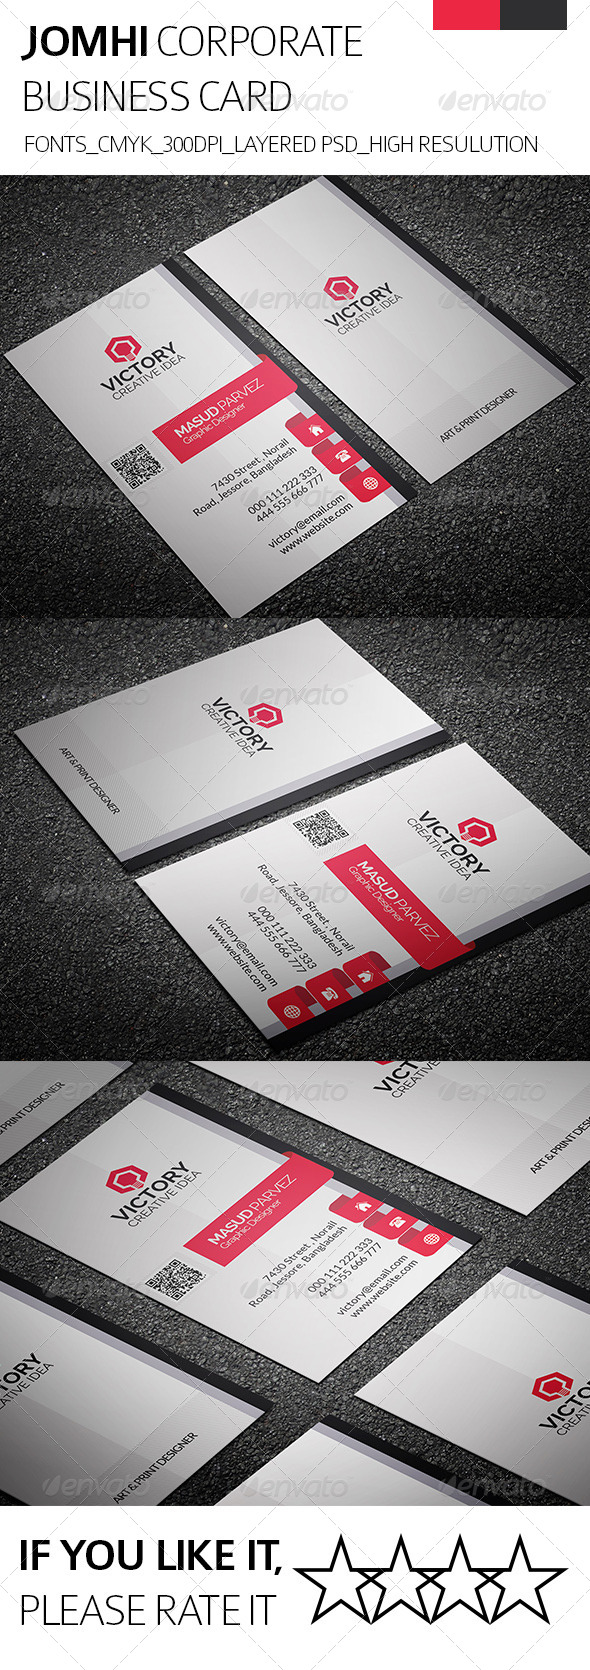 Jomhi & Corporate Business Card